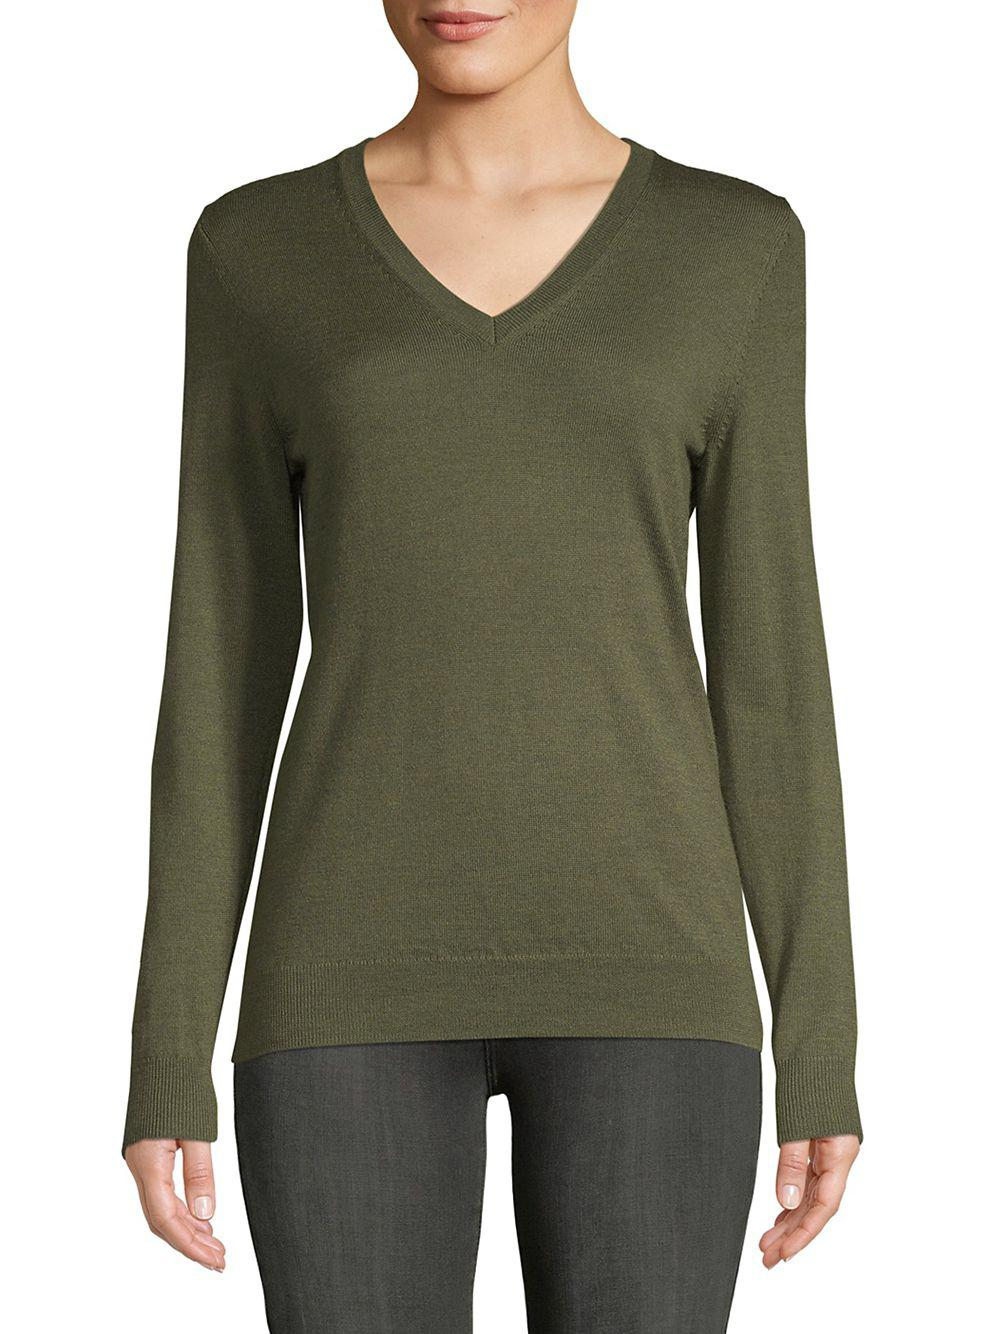 eaca9115dac4f Lyst - Lord   Taylor Petite Basic Merino Wool V-neck in Green